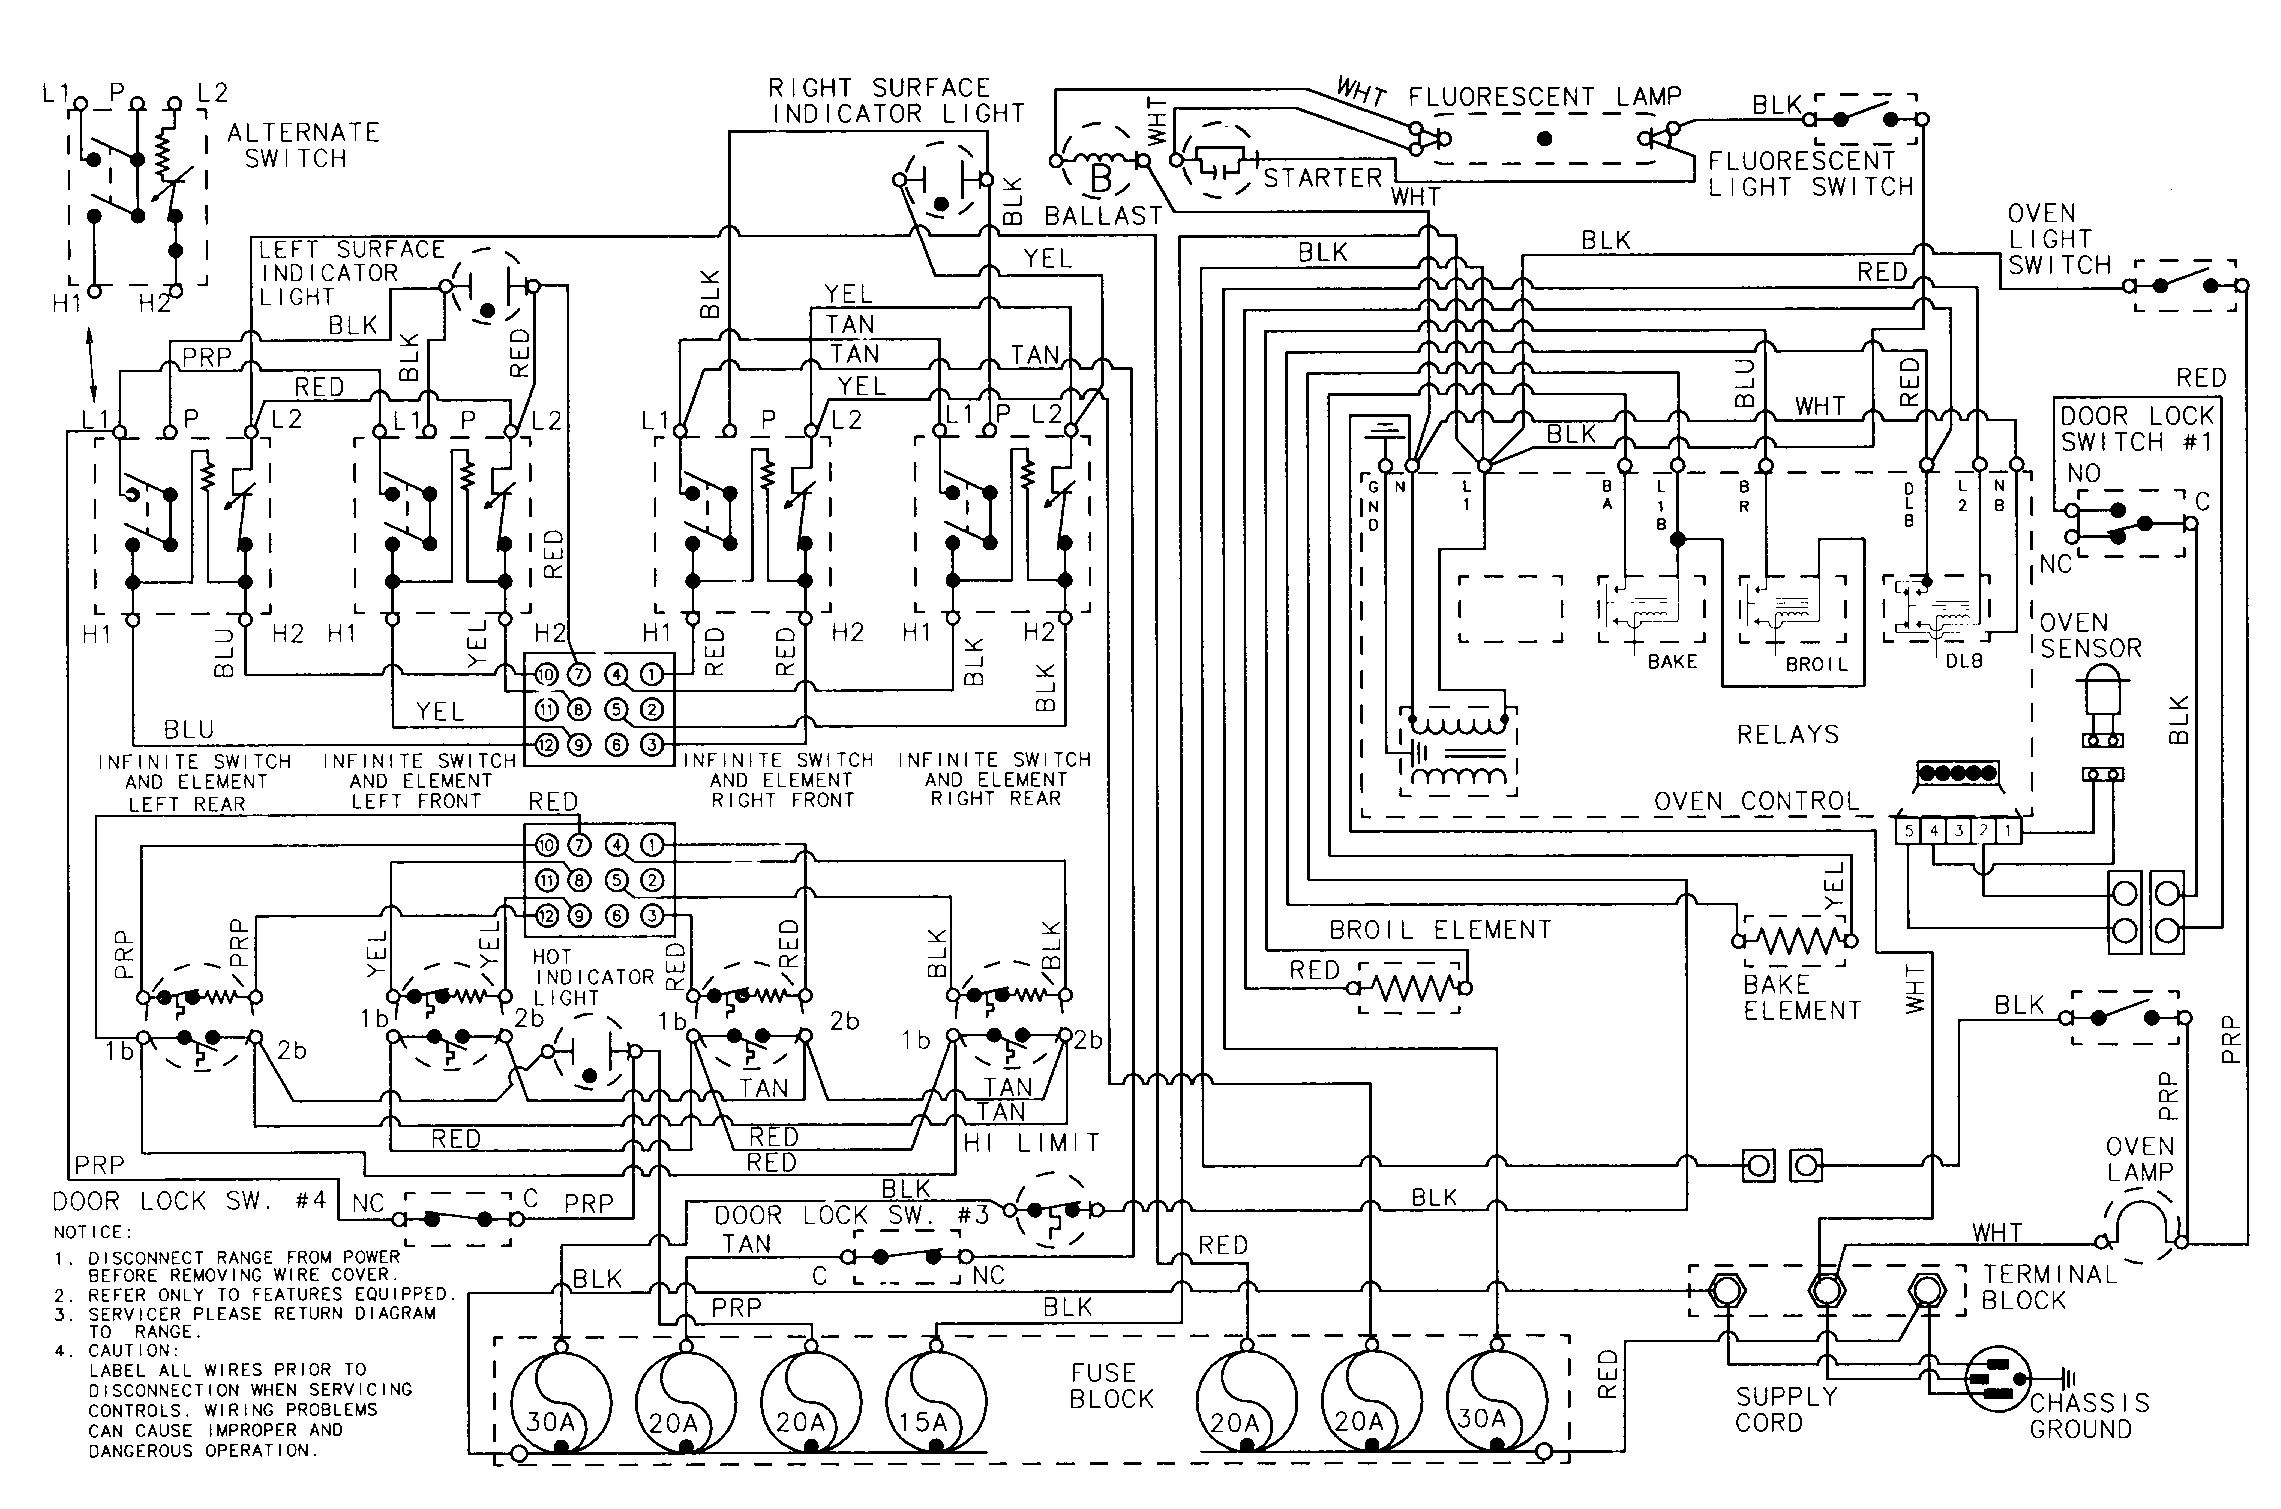 Remarkable Maytag Wiring Schematic Maytag Dishwasher Wiring Diagram Maytag Wiring Cloud Philuggs Outletorg